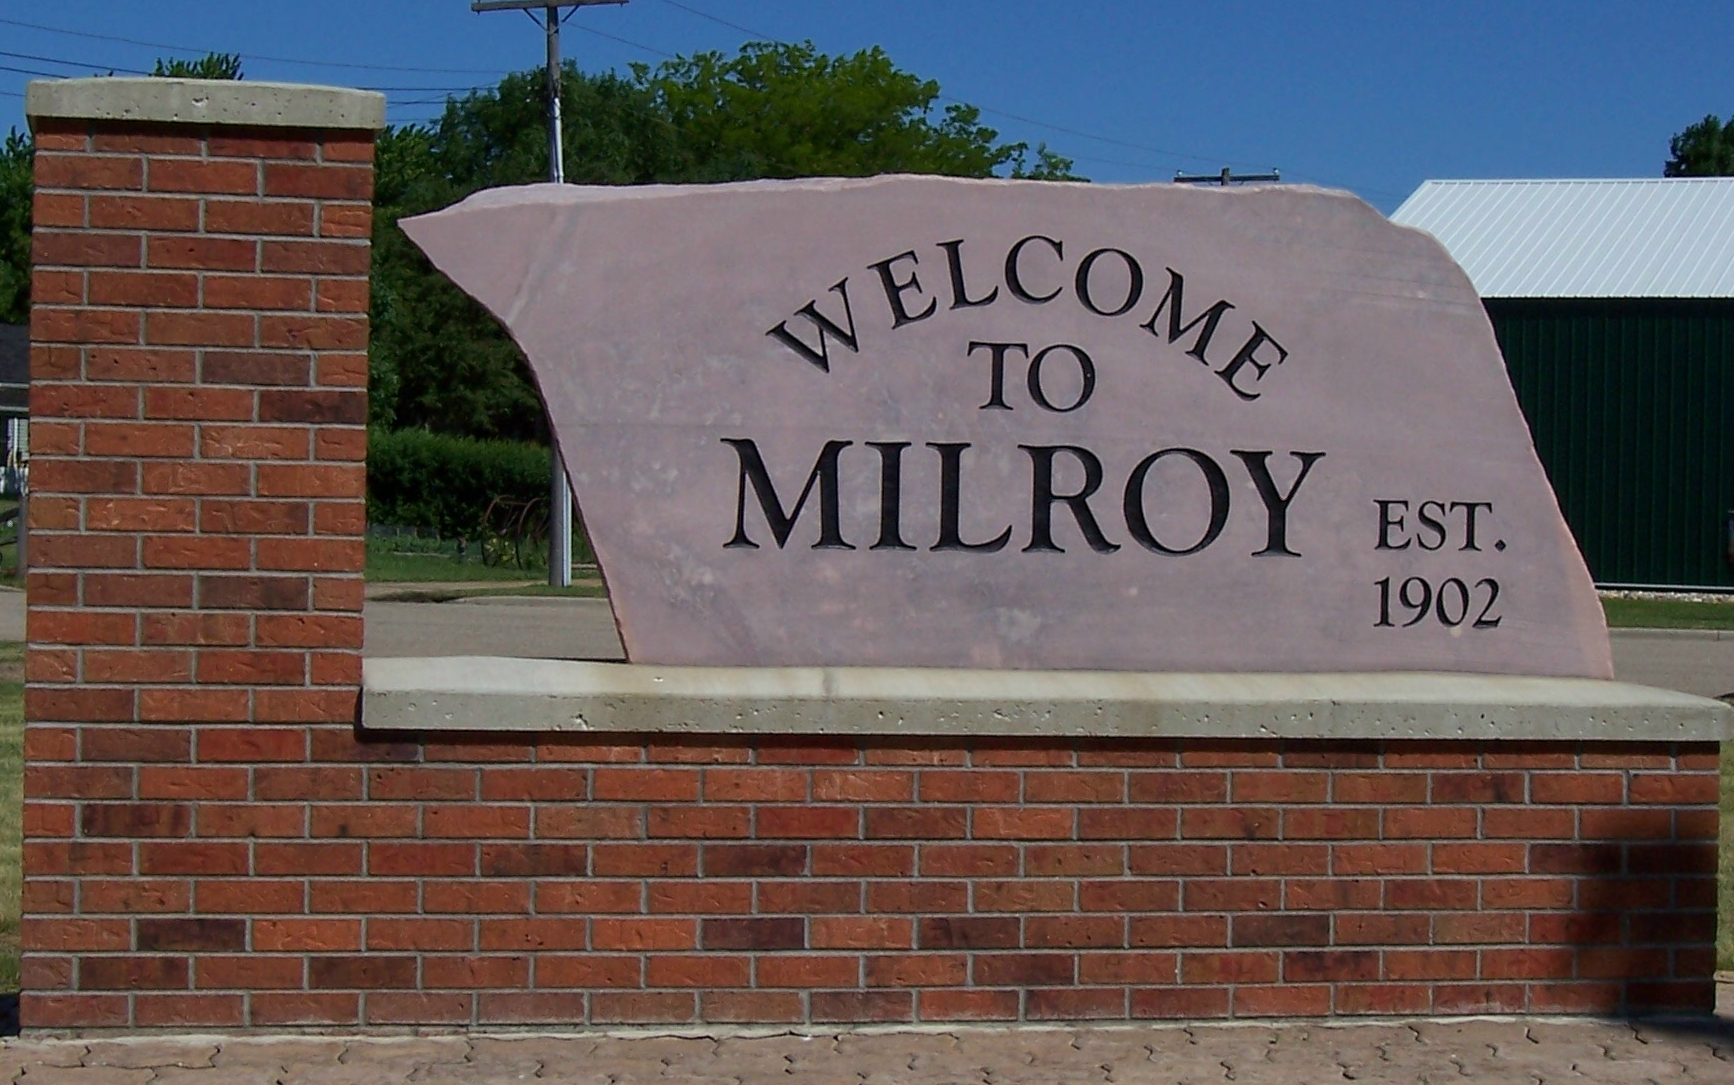 City of Milroy Slide Image